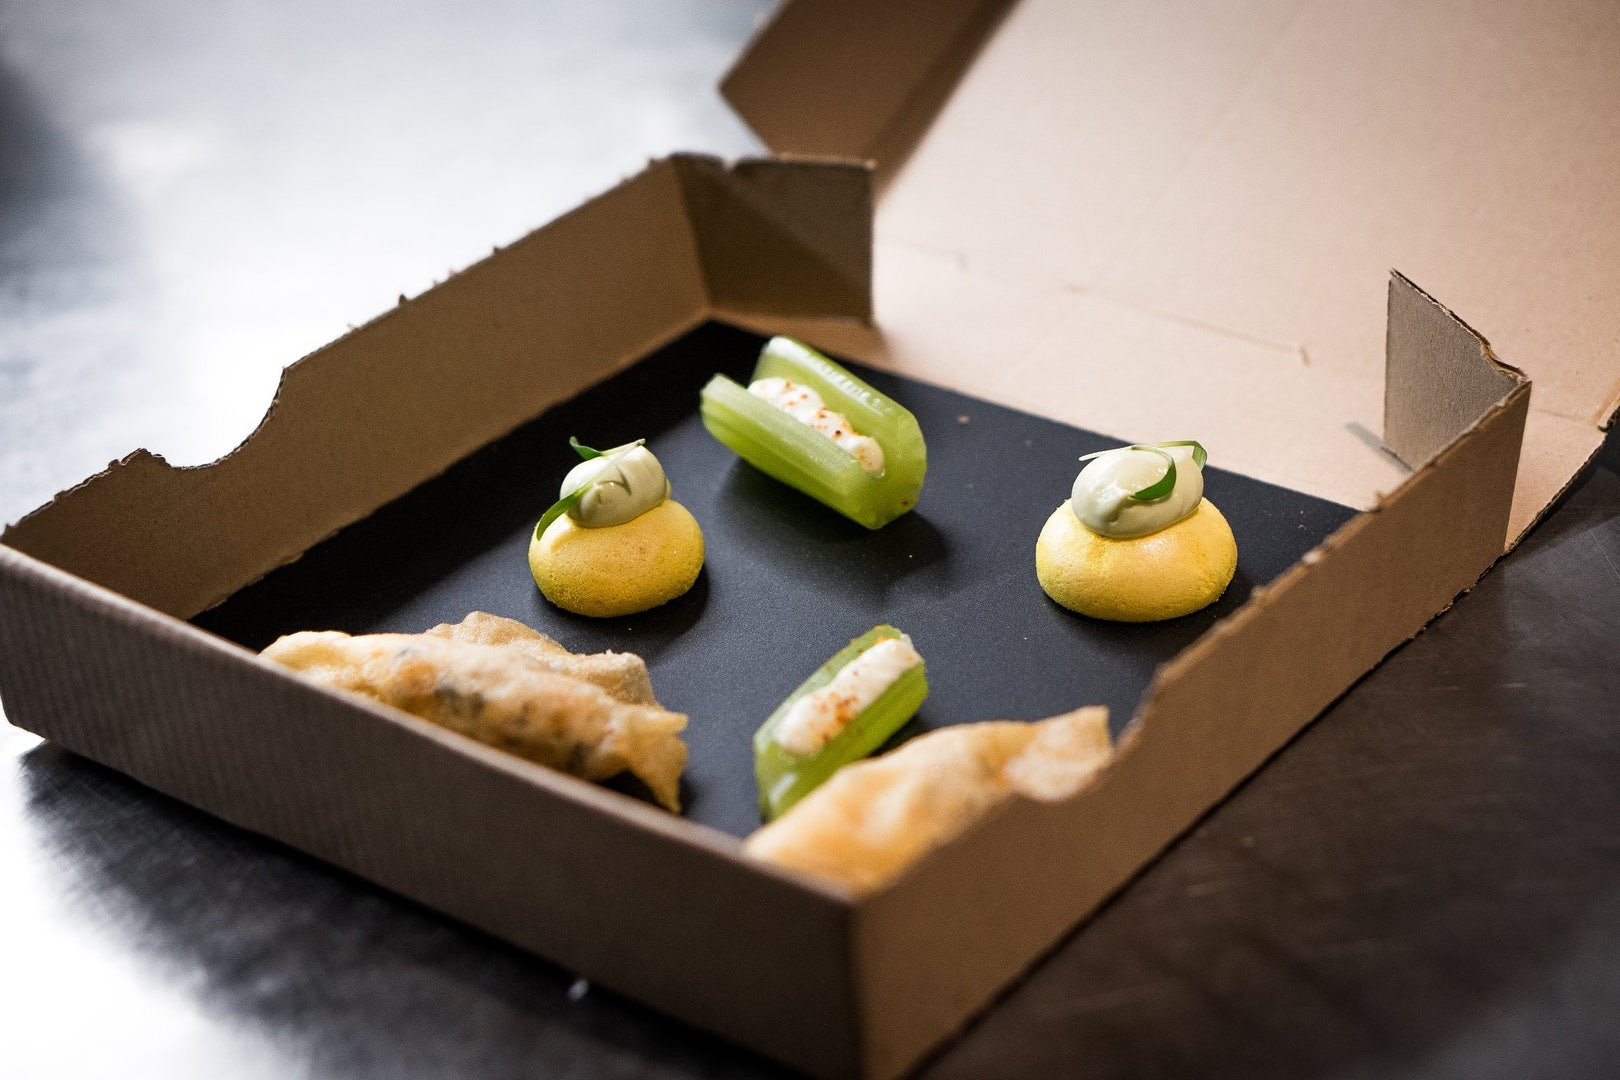 culinary snacks in a carton box from Cookies Cream